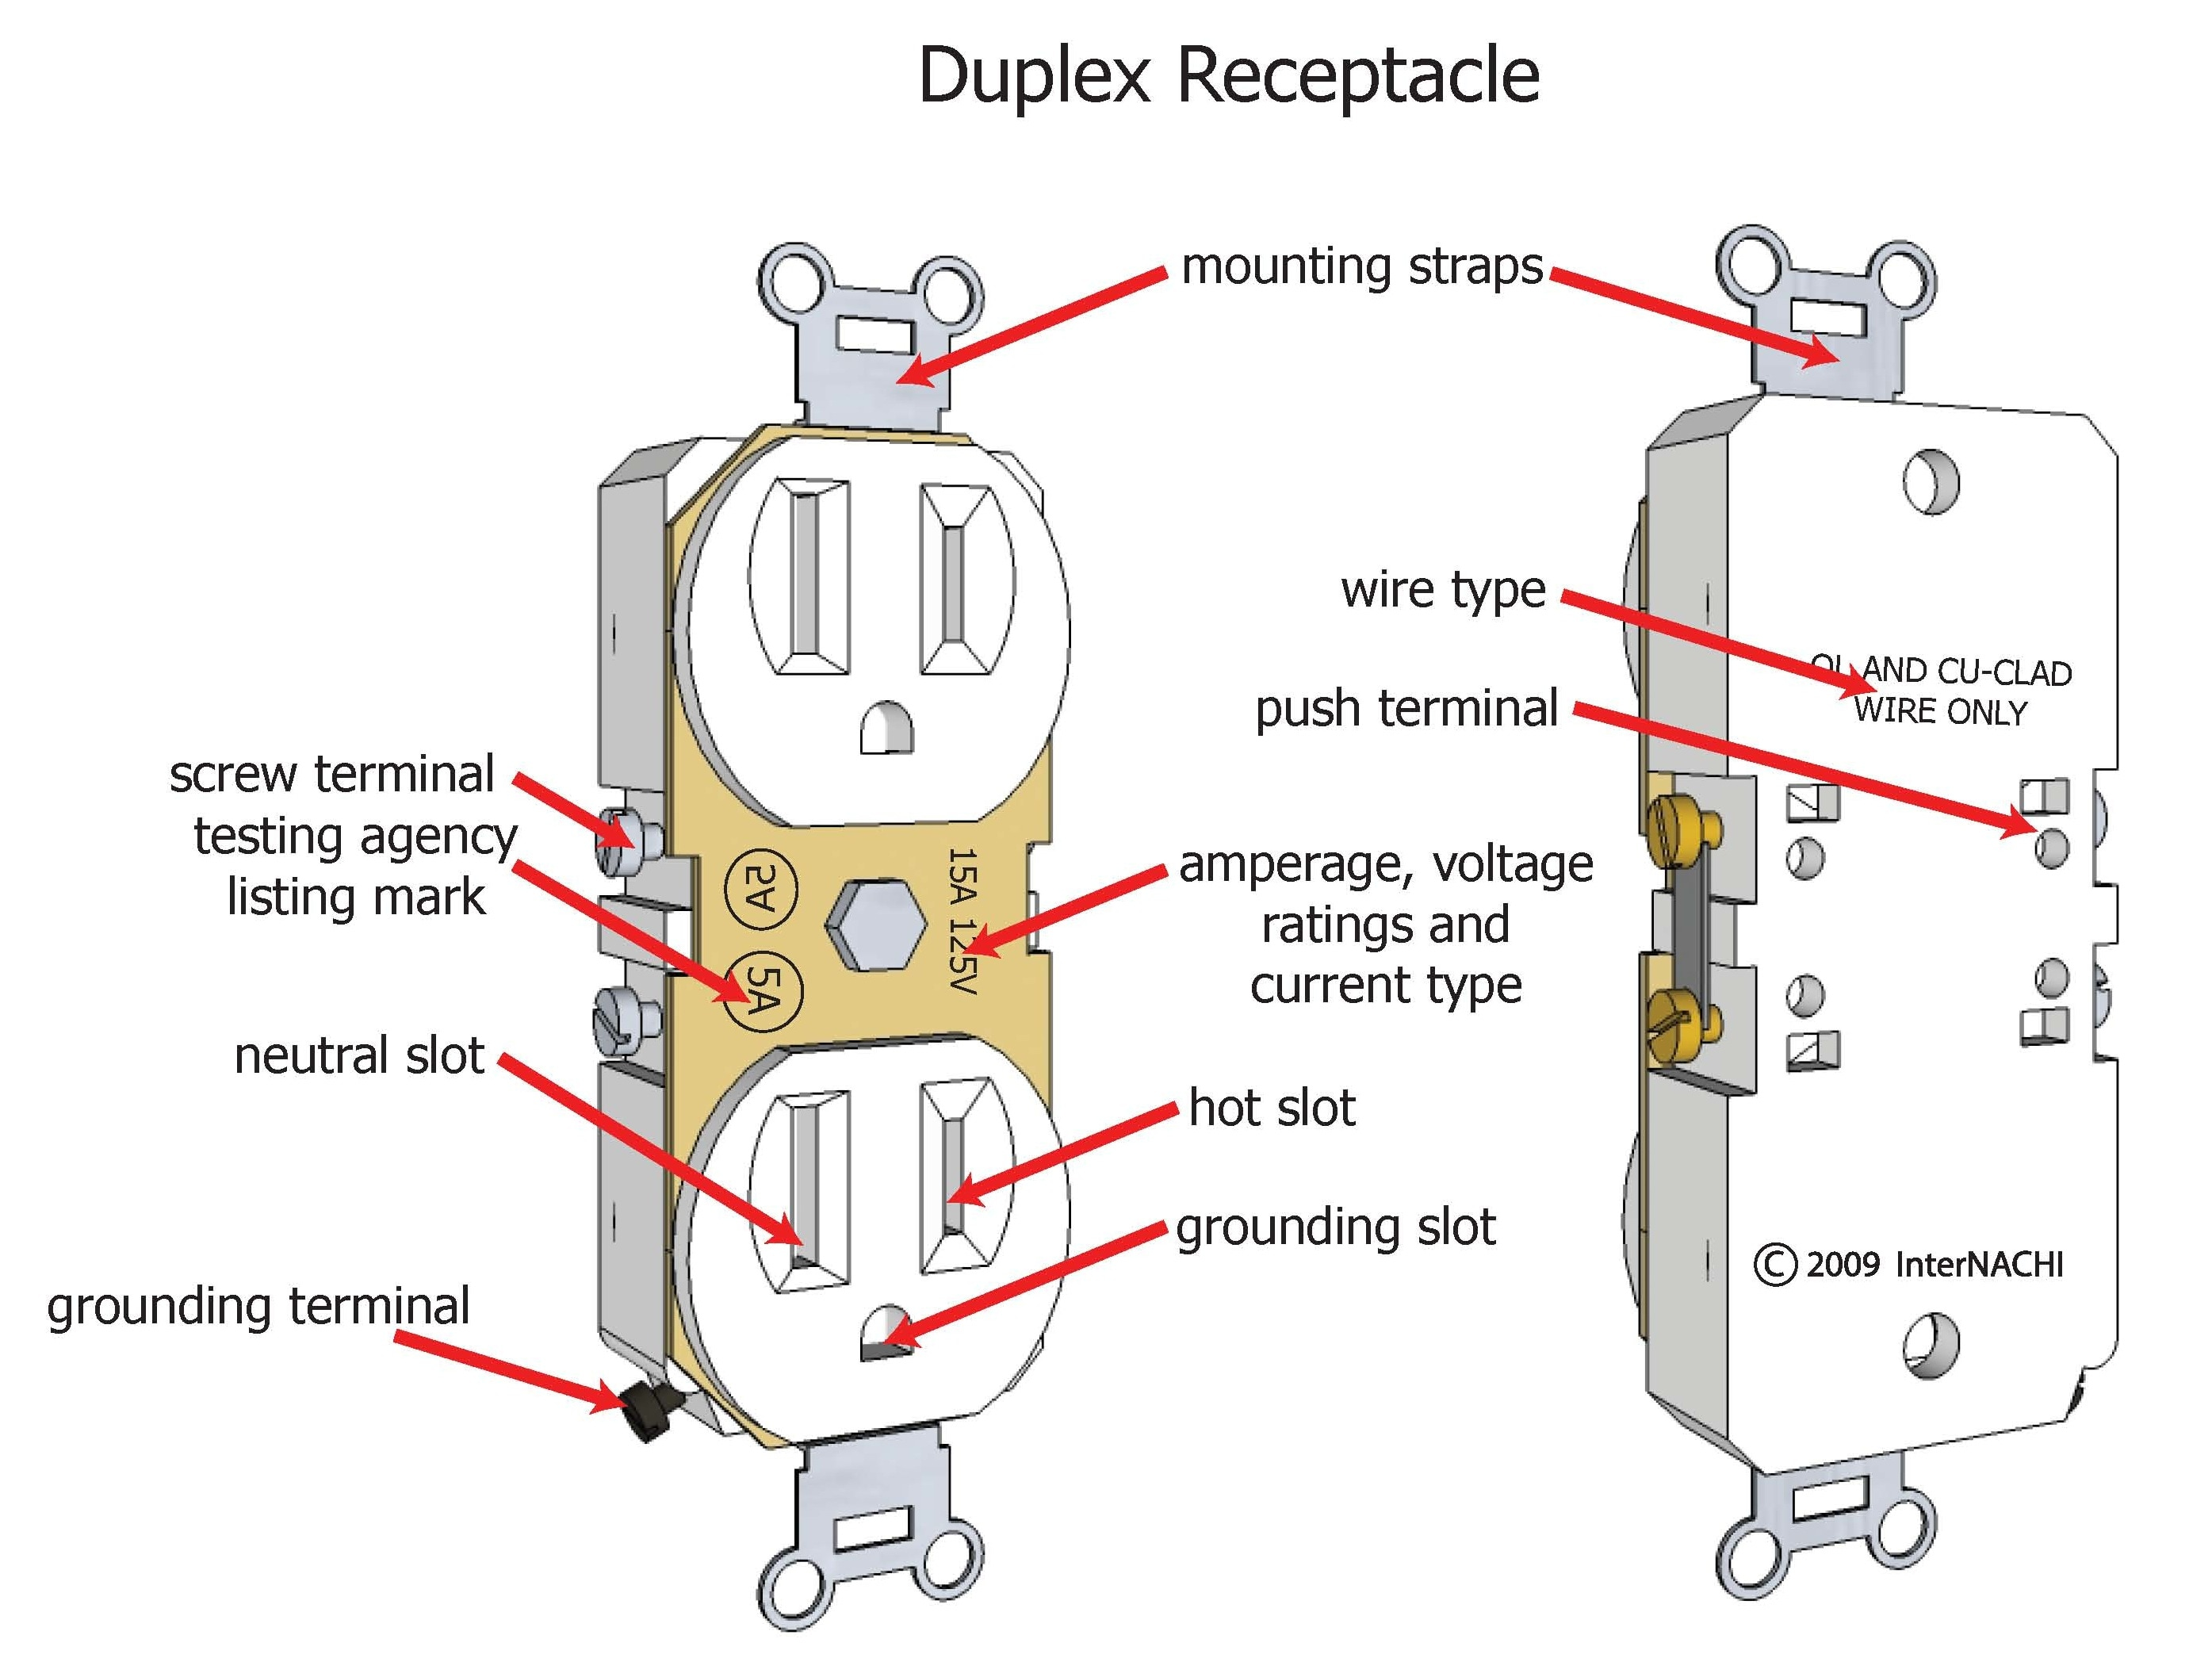 outlet wire diagram basic wiring diagram for outlet basic image wiring basic outlet wiring small solar power wiring diagram